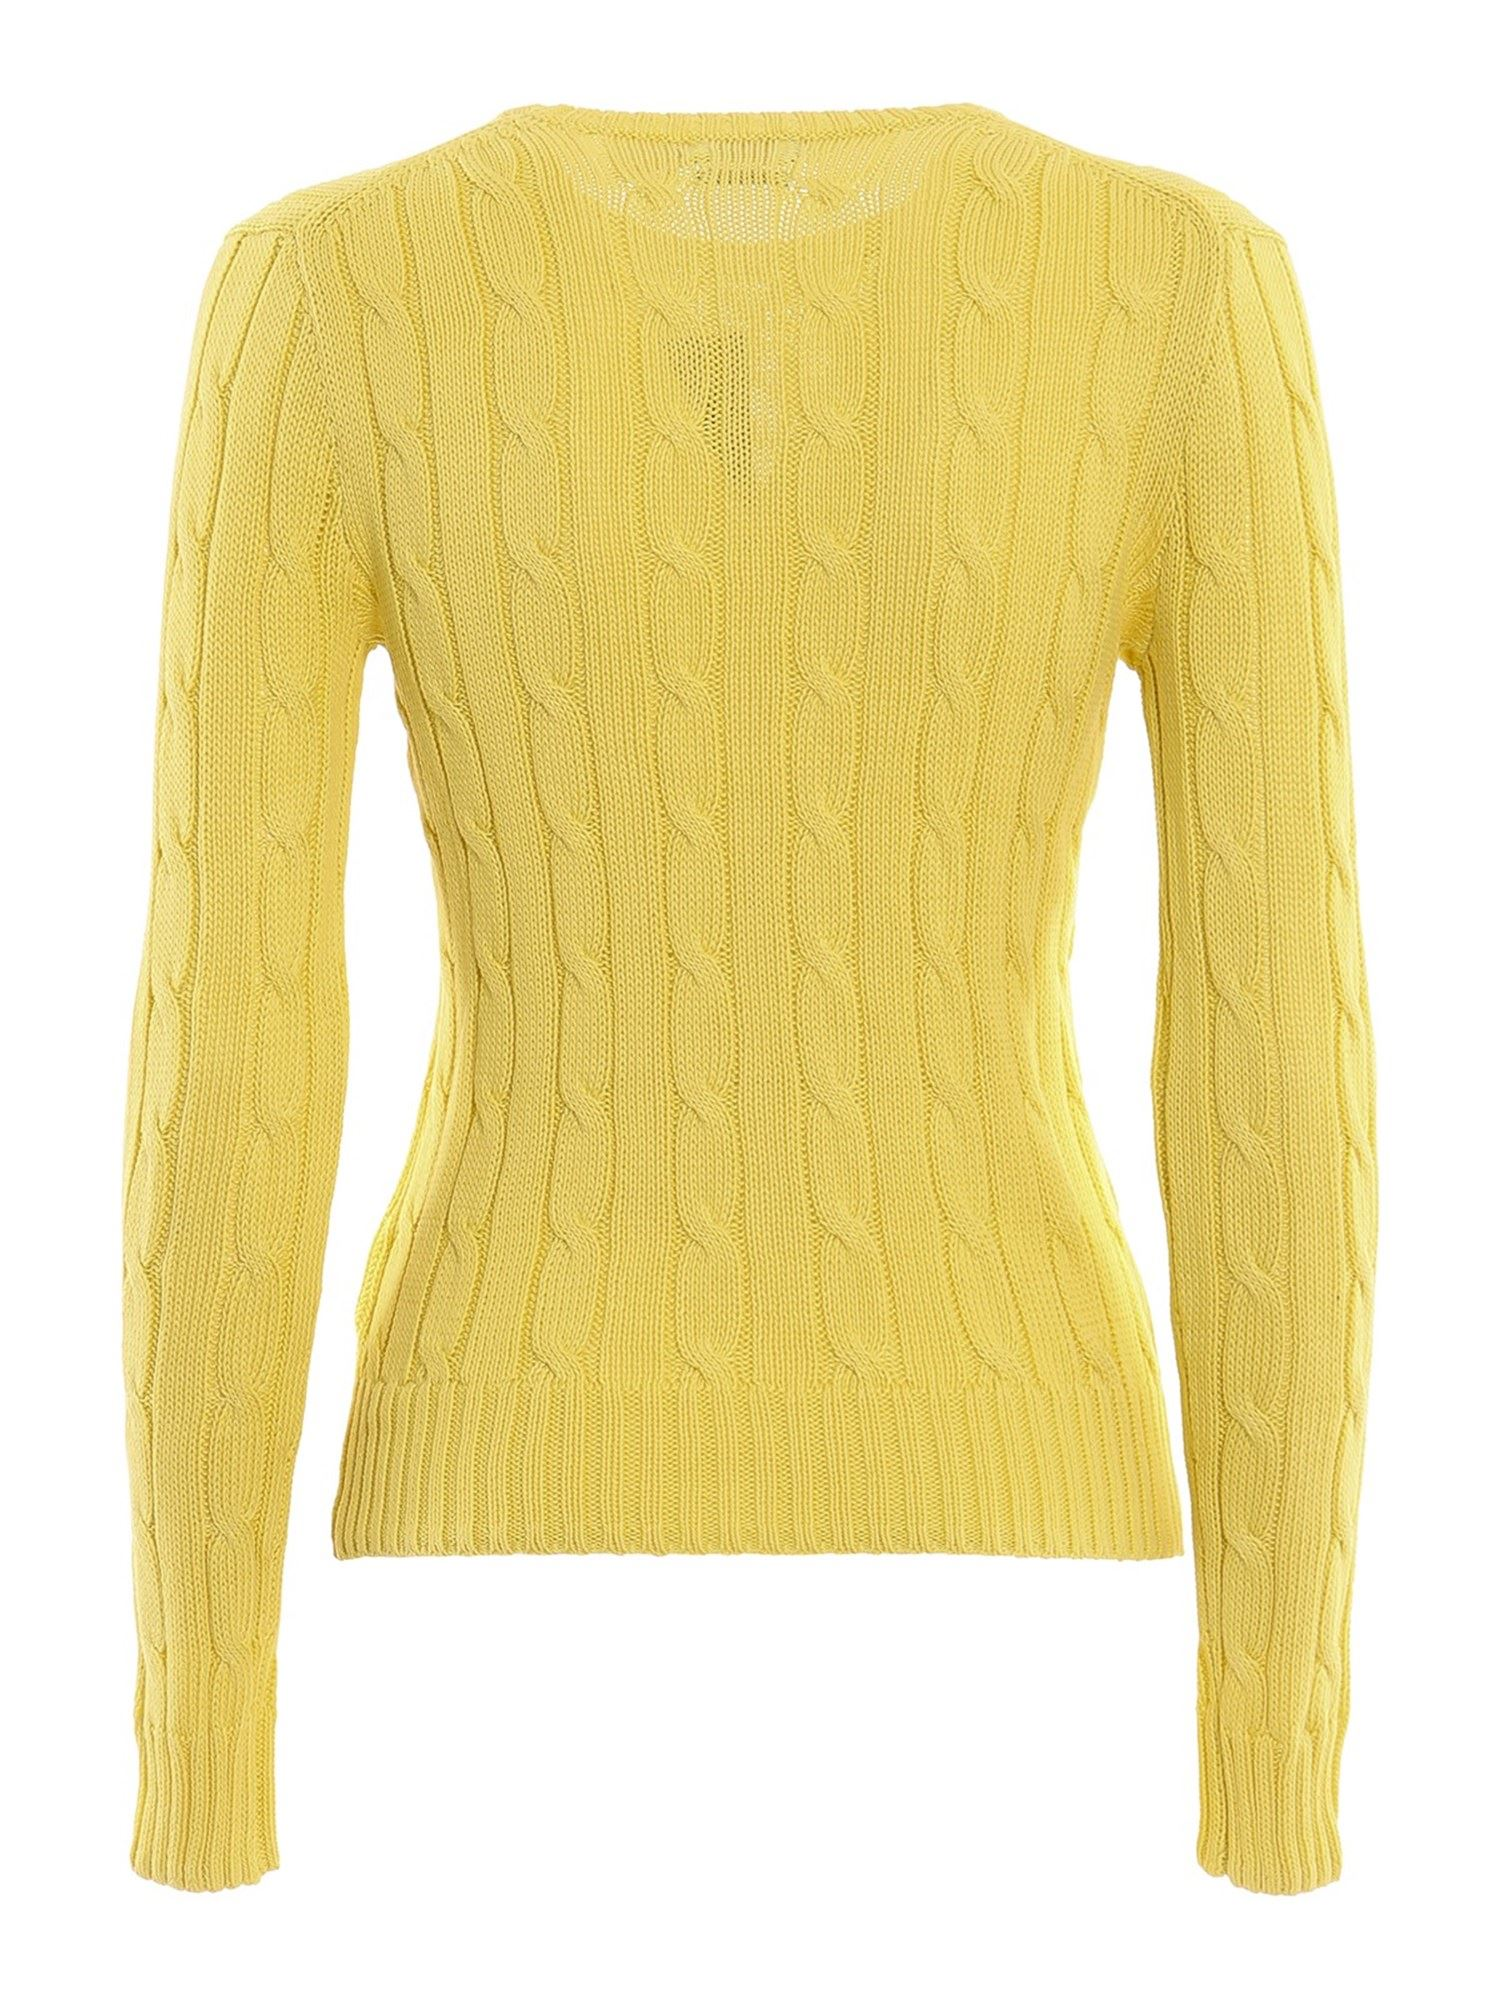 LOGO EMBROIDERY JUMPER IN YELLOW POLO RALPH LAUREN   -1384759495   211580009094